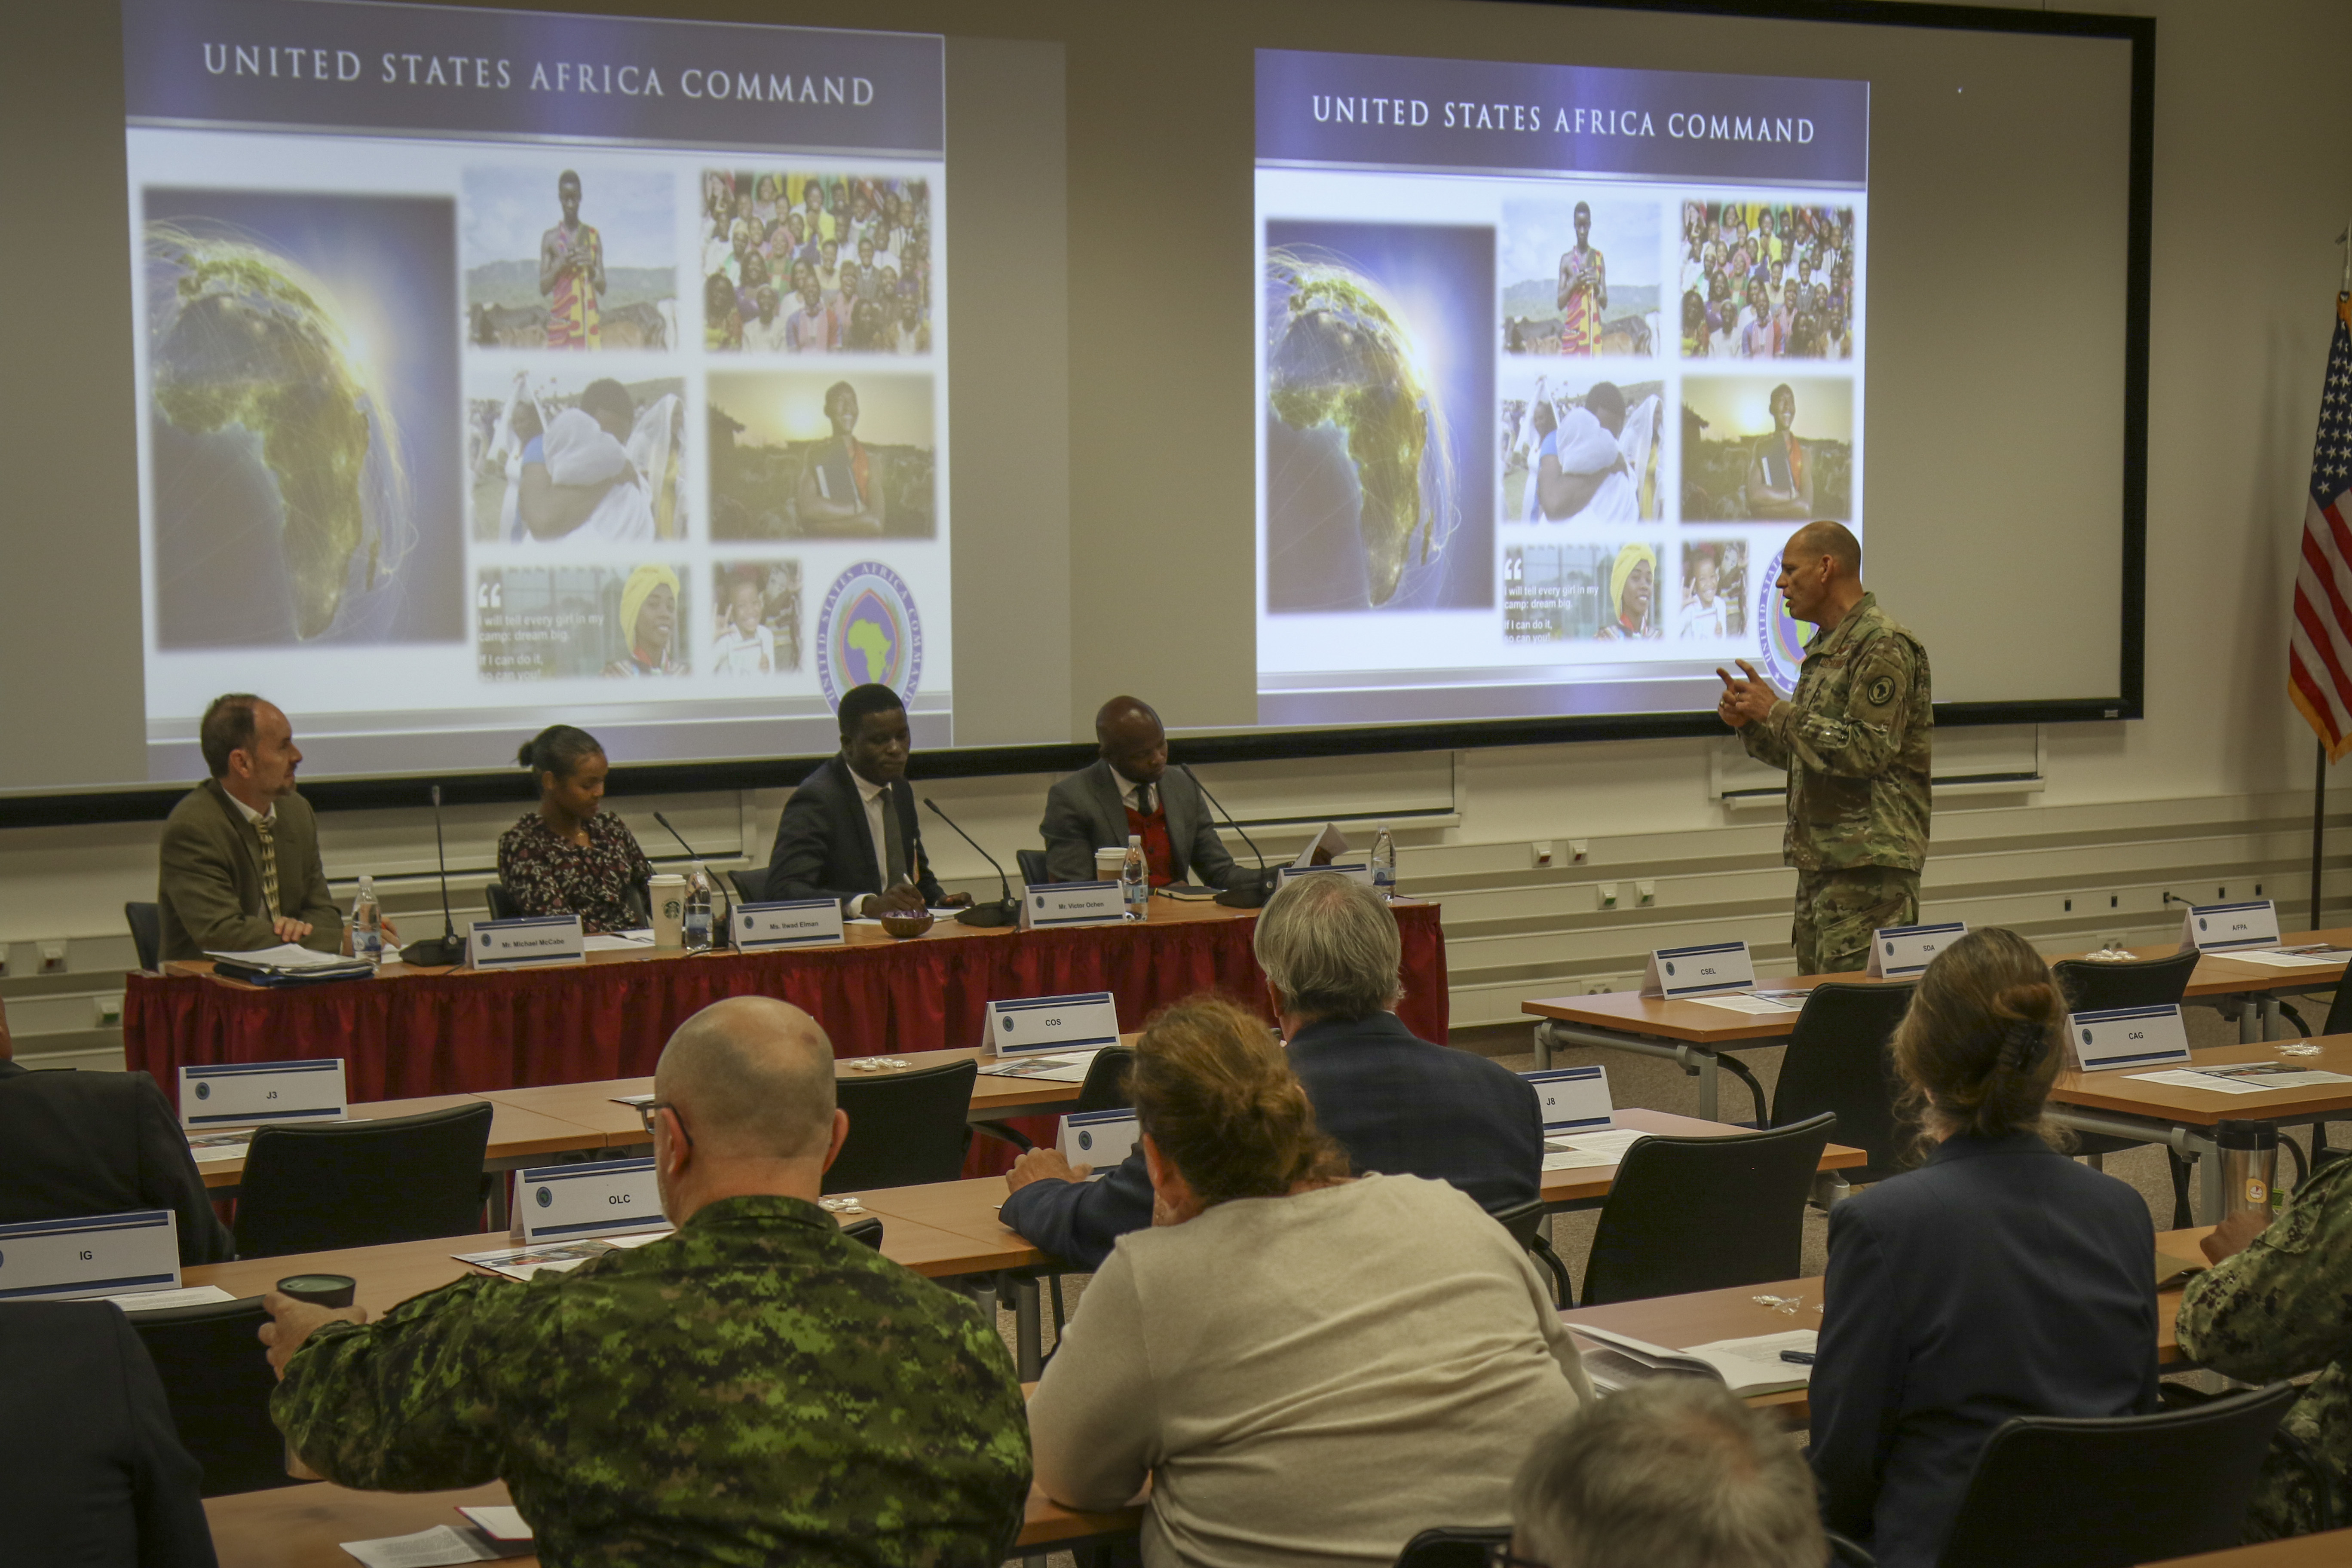 Lt. Gen. James Vechery, deputy to the commander for military operations, U.S. Africa Command, introduces the Youth, Peace and Security panel guest speakers in Stuttgart, Germany, Oct. 15, 2019. The trio of speakers, whose accolades include Nobel Peace Prize nominations, advocate for developing African youth leaders to promote peace throughout the continent.